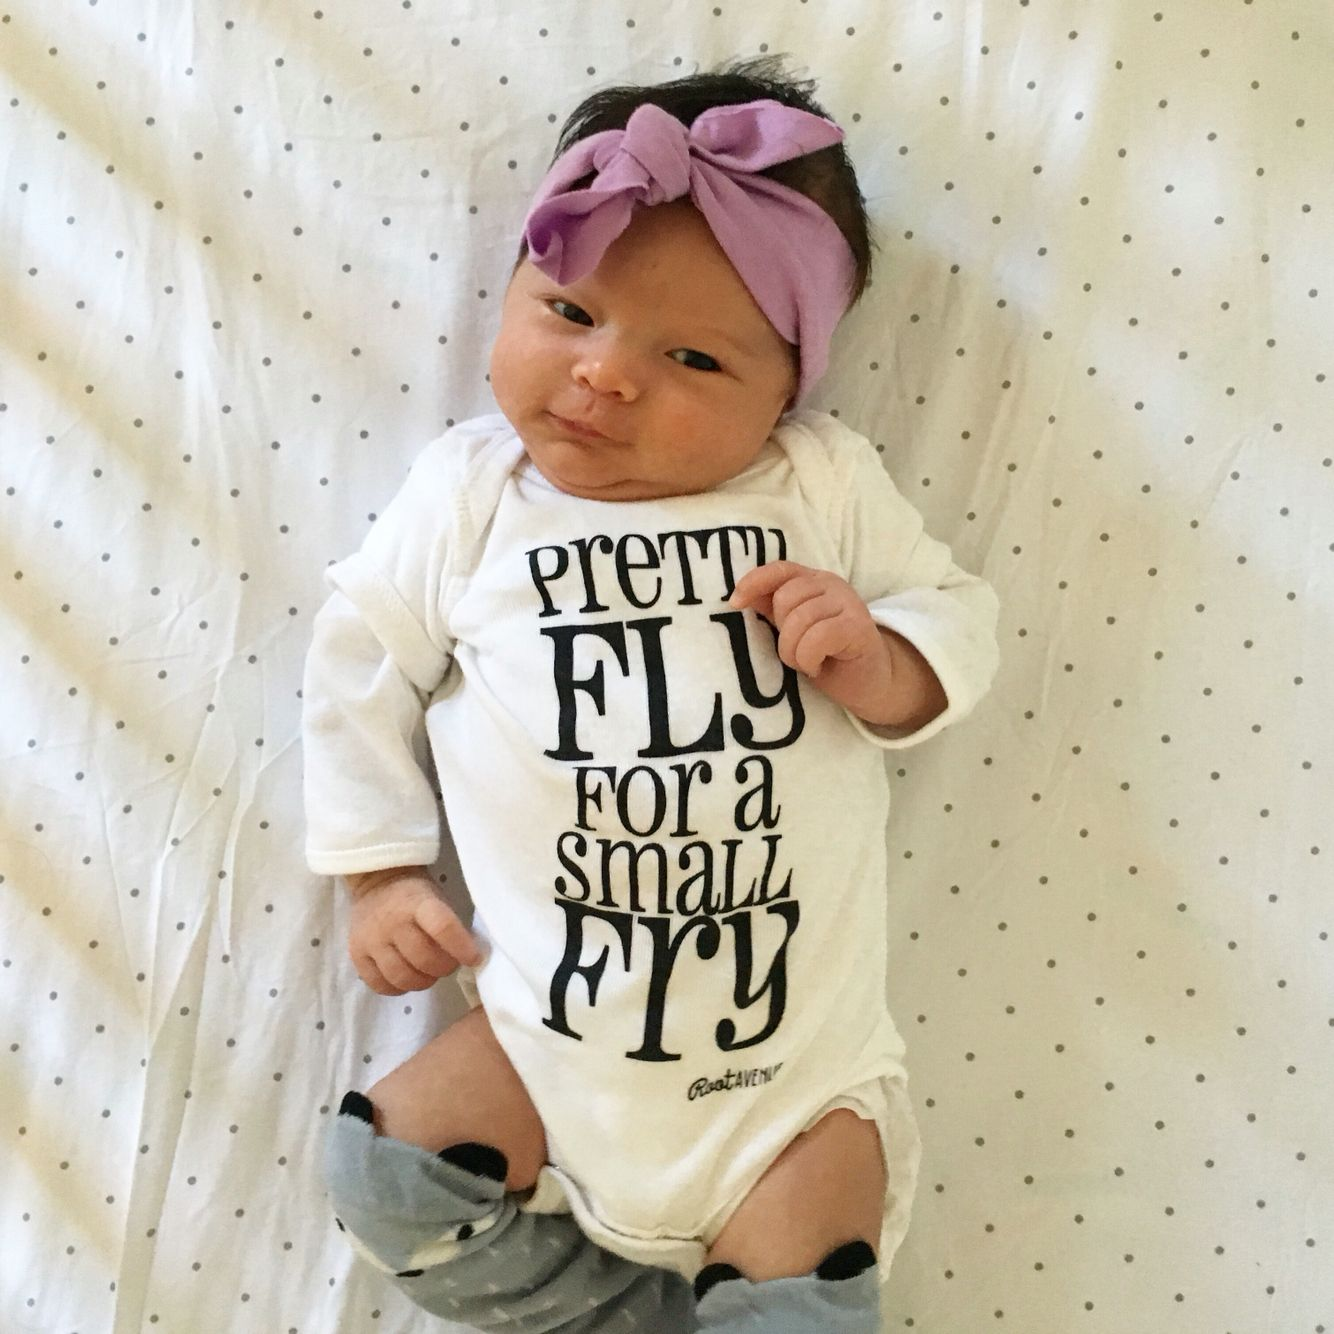 Awesome Baby Images: Cute, Unique Gender Neutral Baby